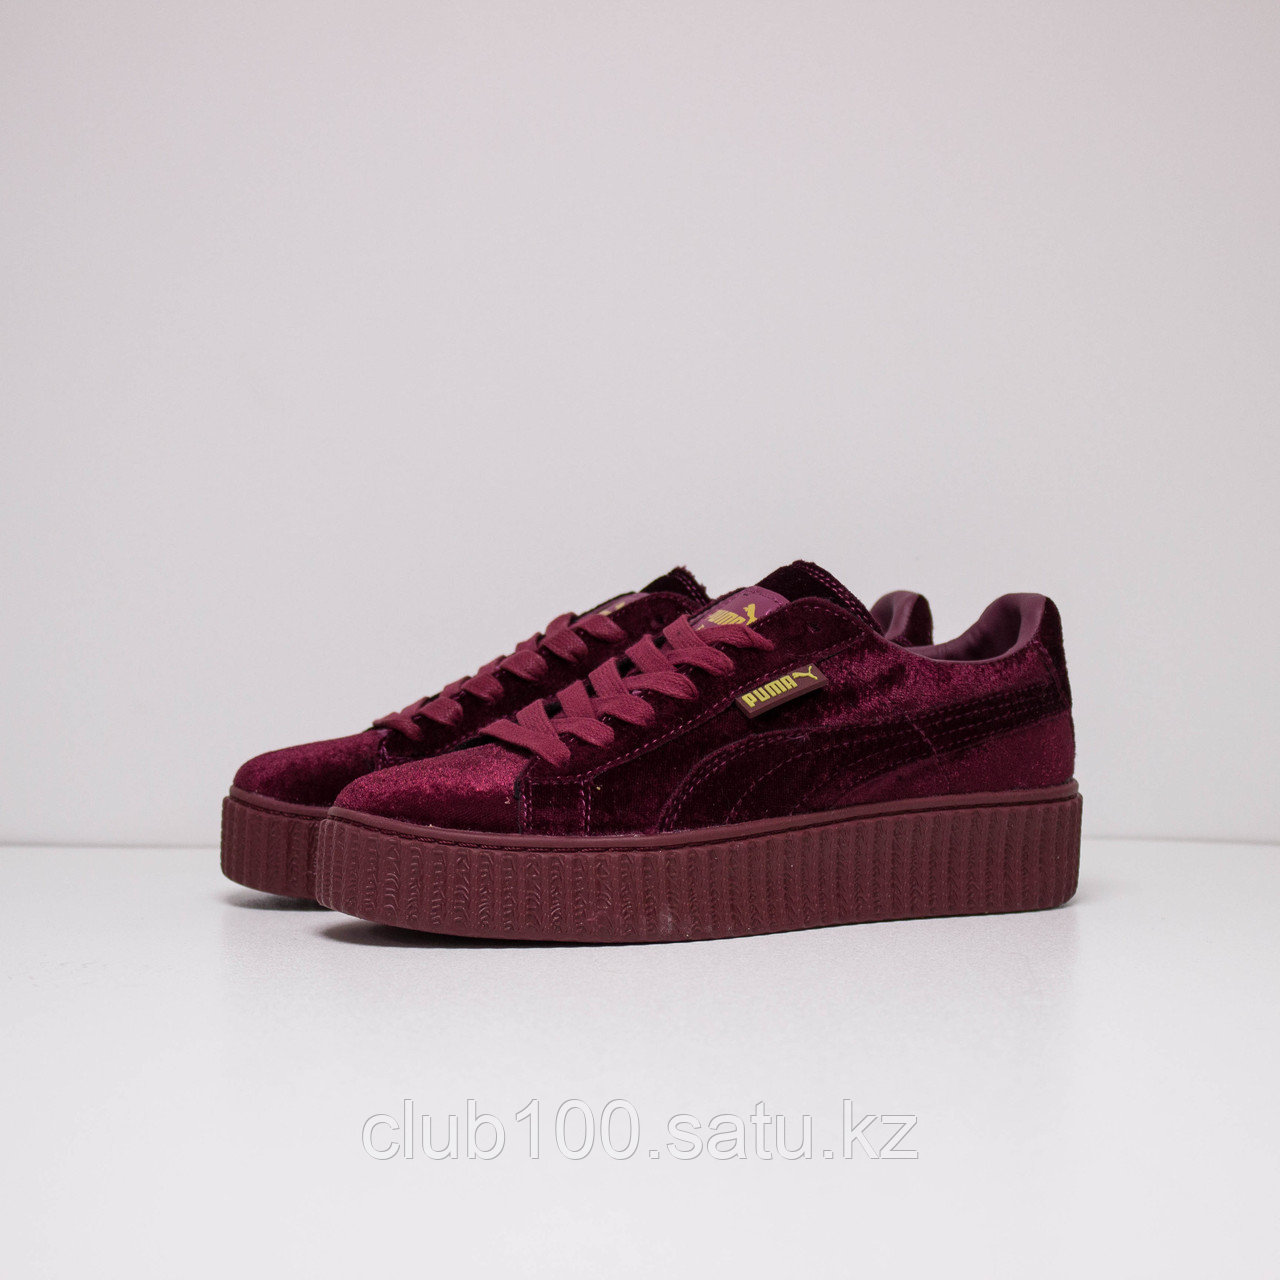 4c95c8ac Кроссовки Puma by Rihanna Creeper Velvet